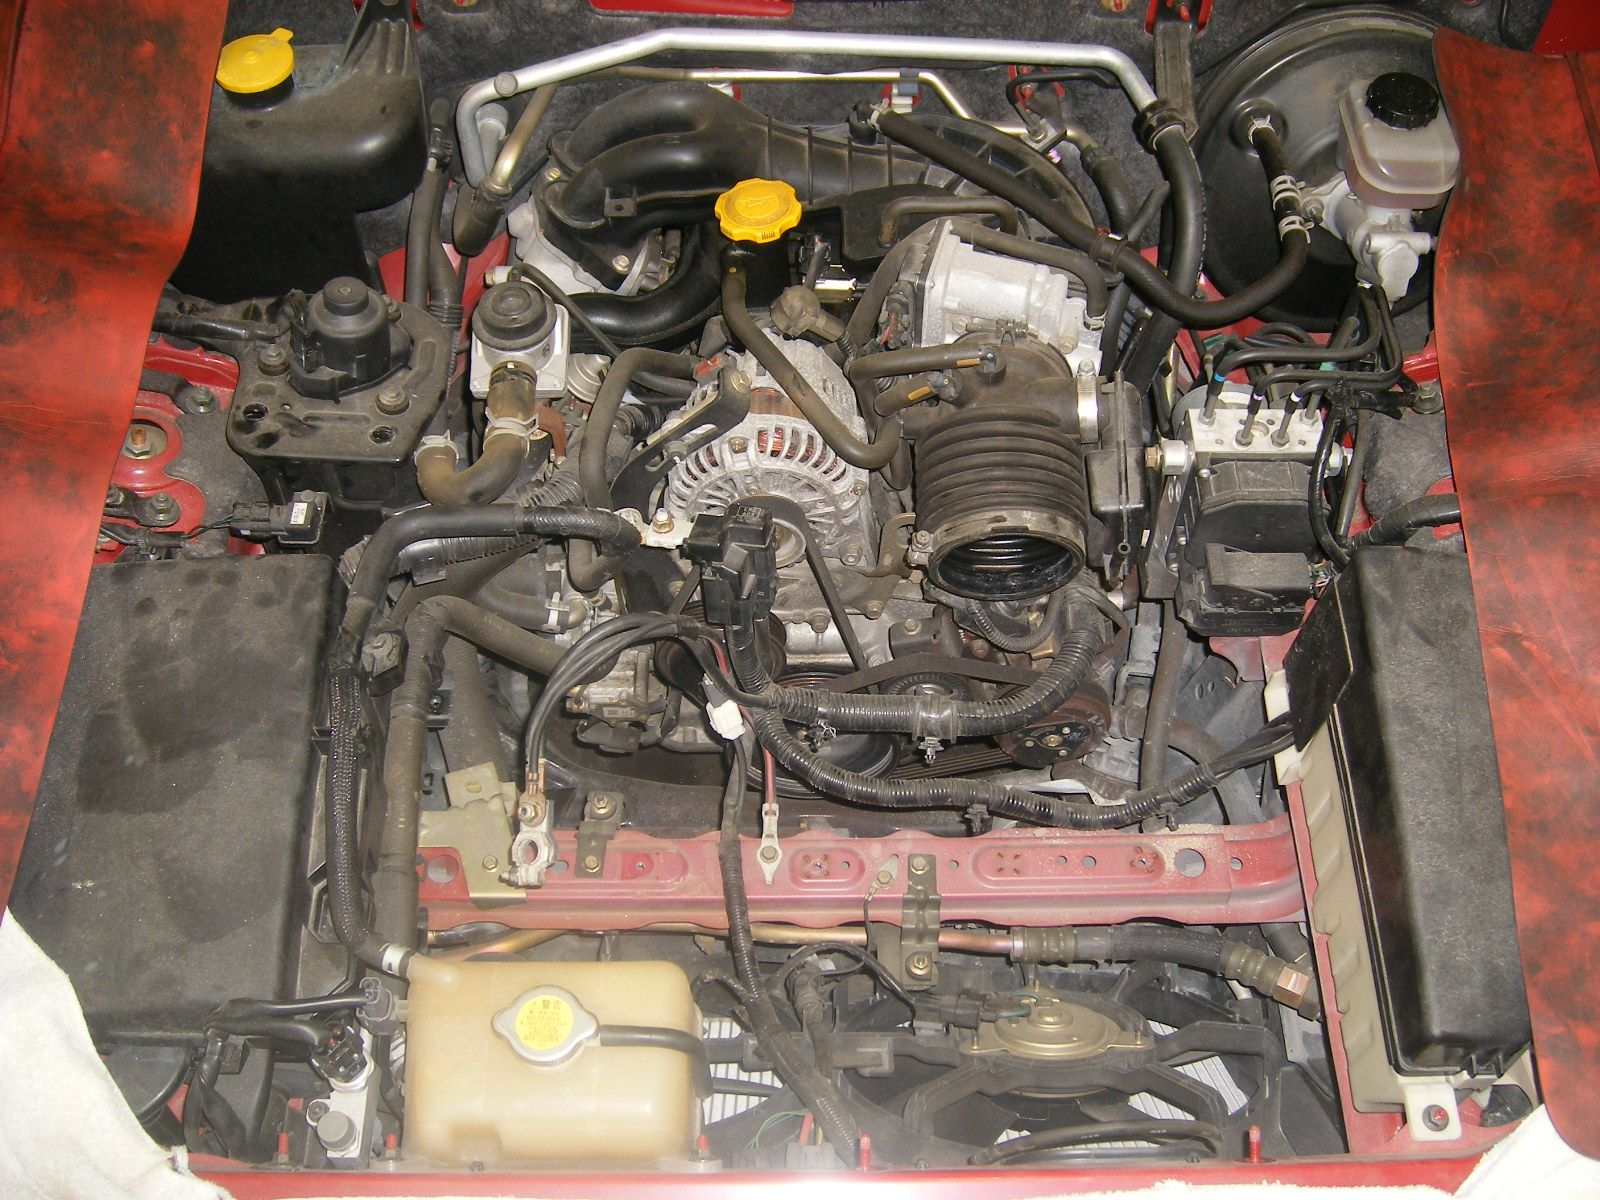 small resolution of how to lift the engine out of the engine compartment mazda pinterest com mazda engine diagram